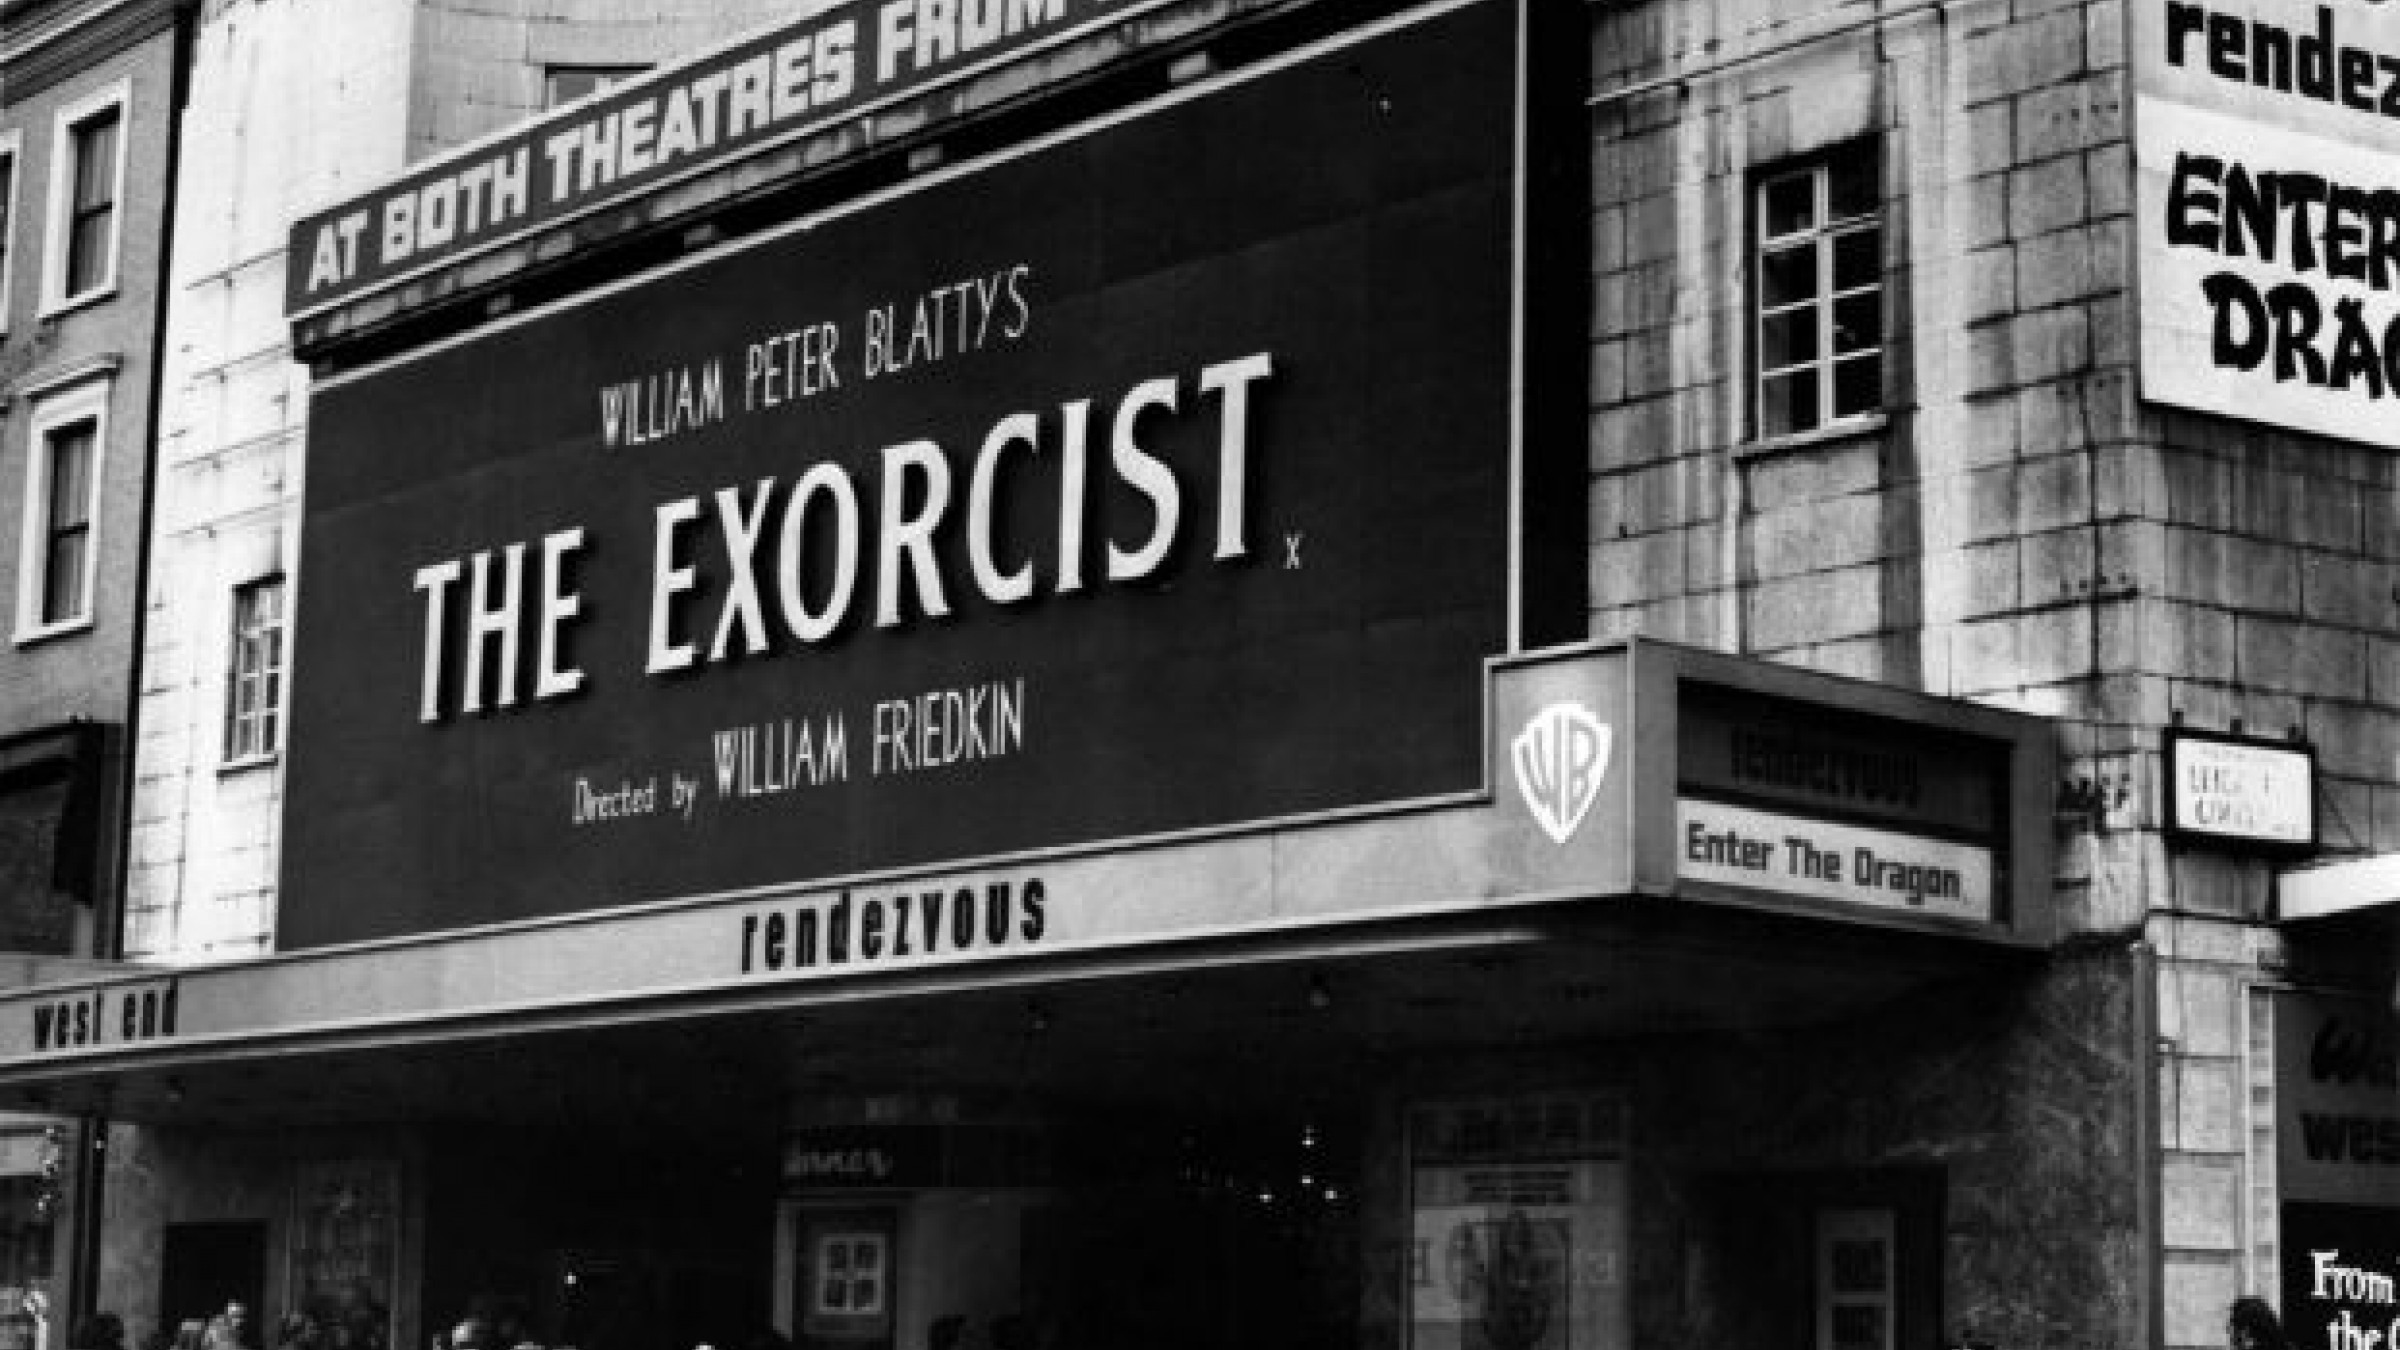 Watch: Audiences Freak Out at Screenings of 'The Exorcist' in 1973